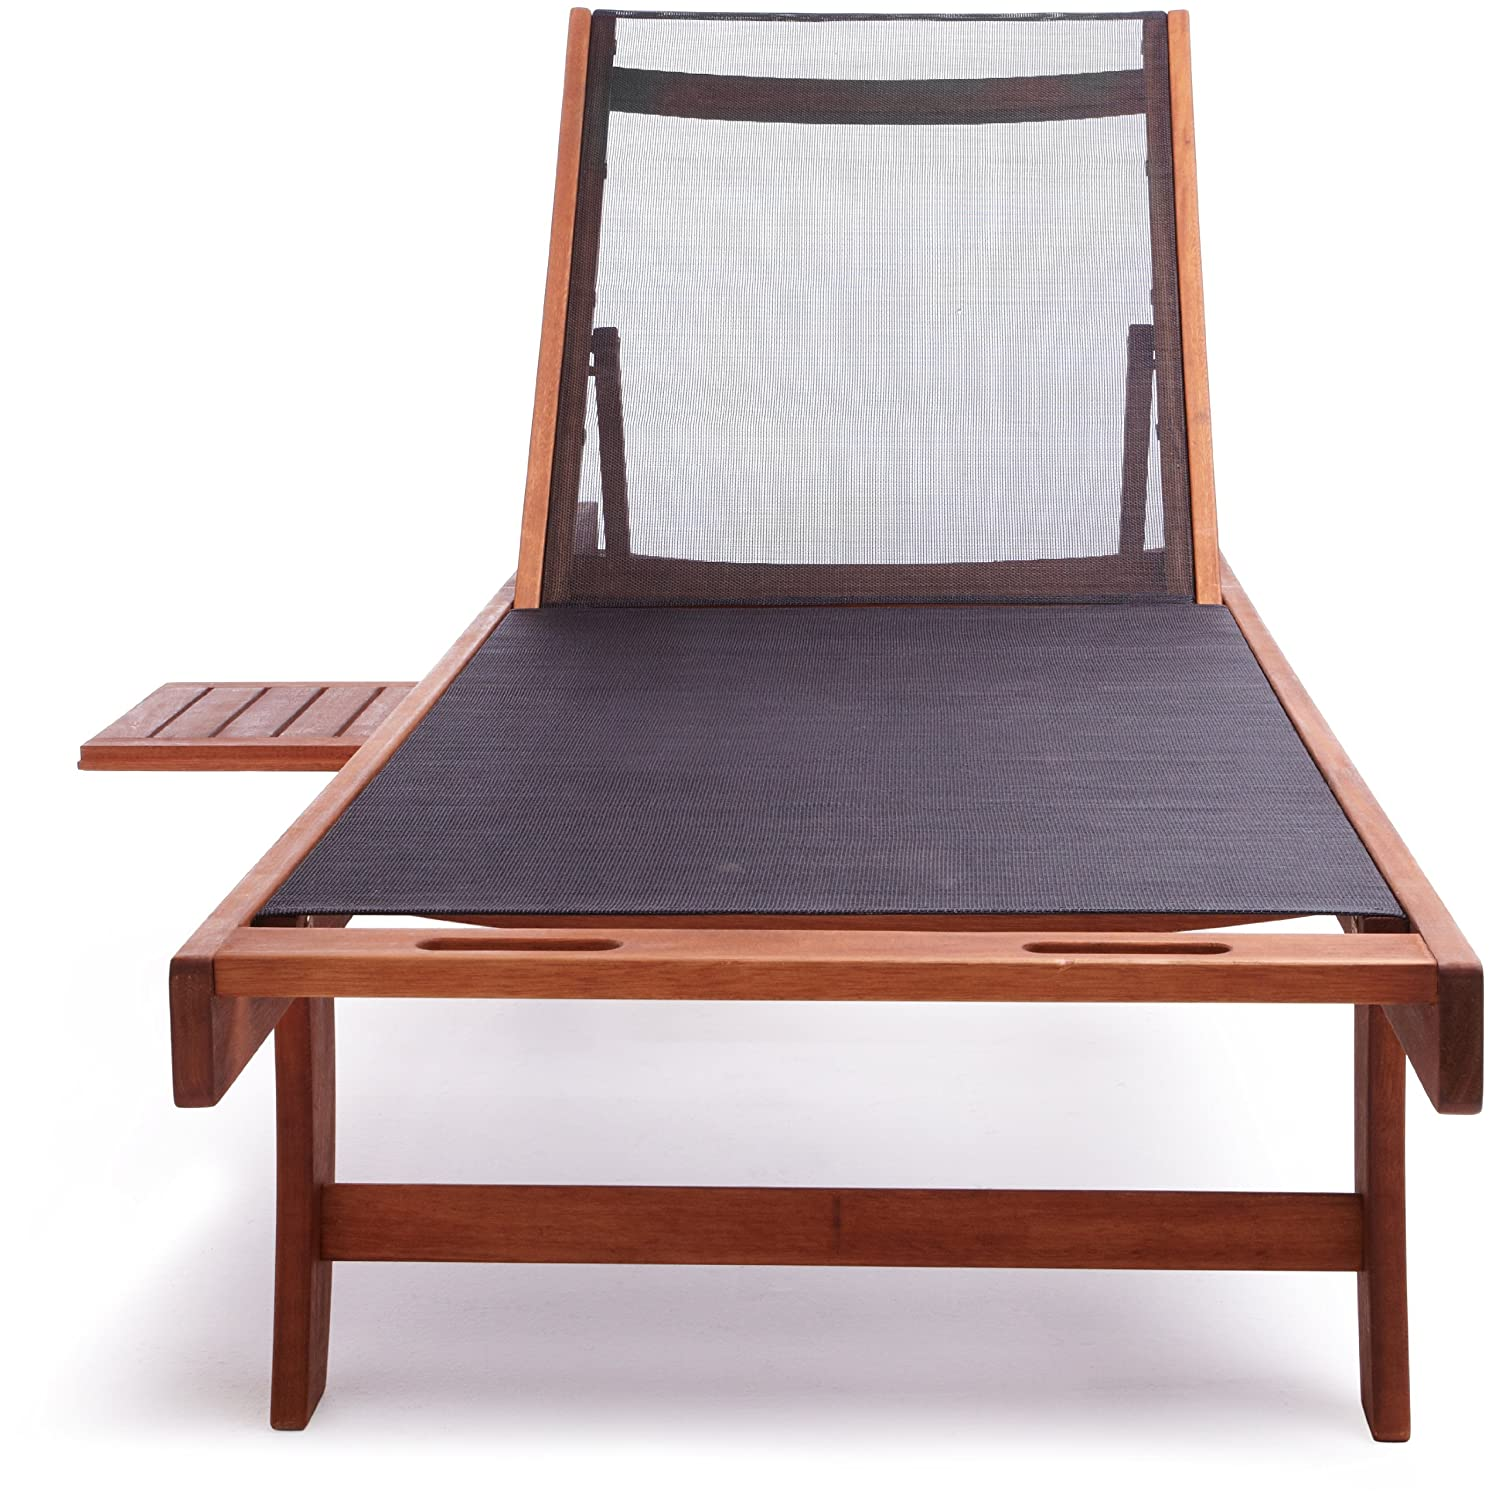 Basics chaise lounge chair 5 reclining position eucalyptus for Chaise 5 5 designers